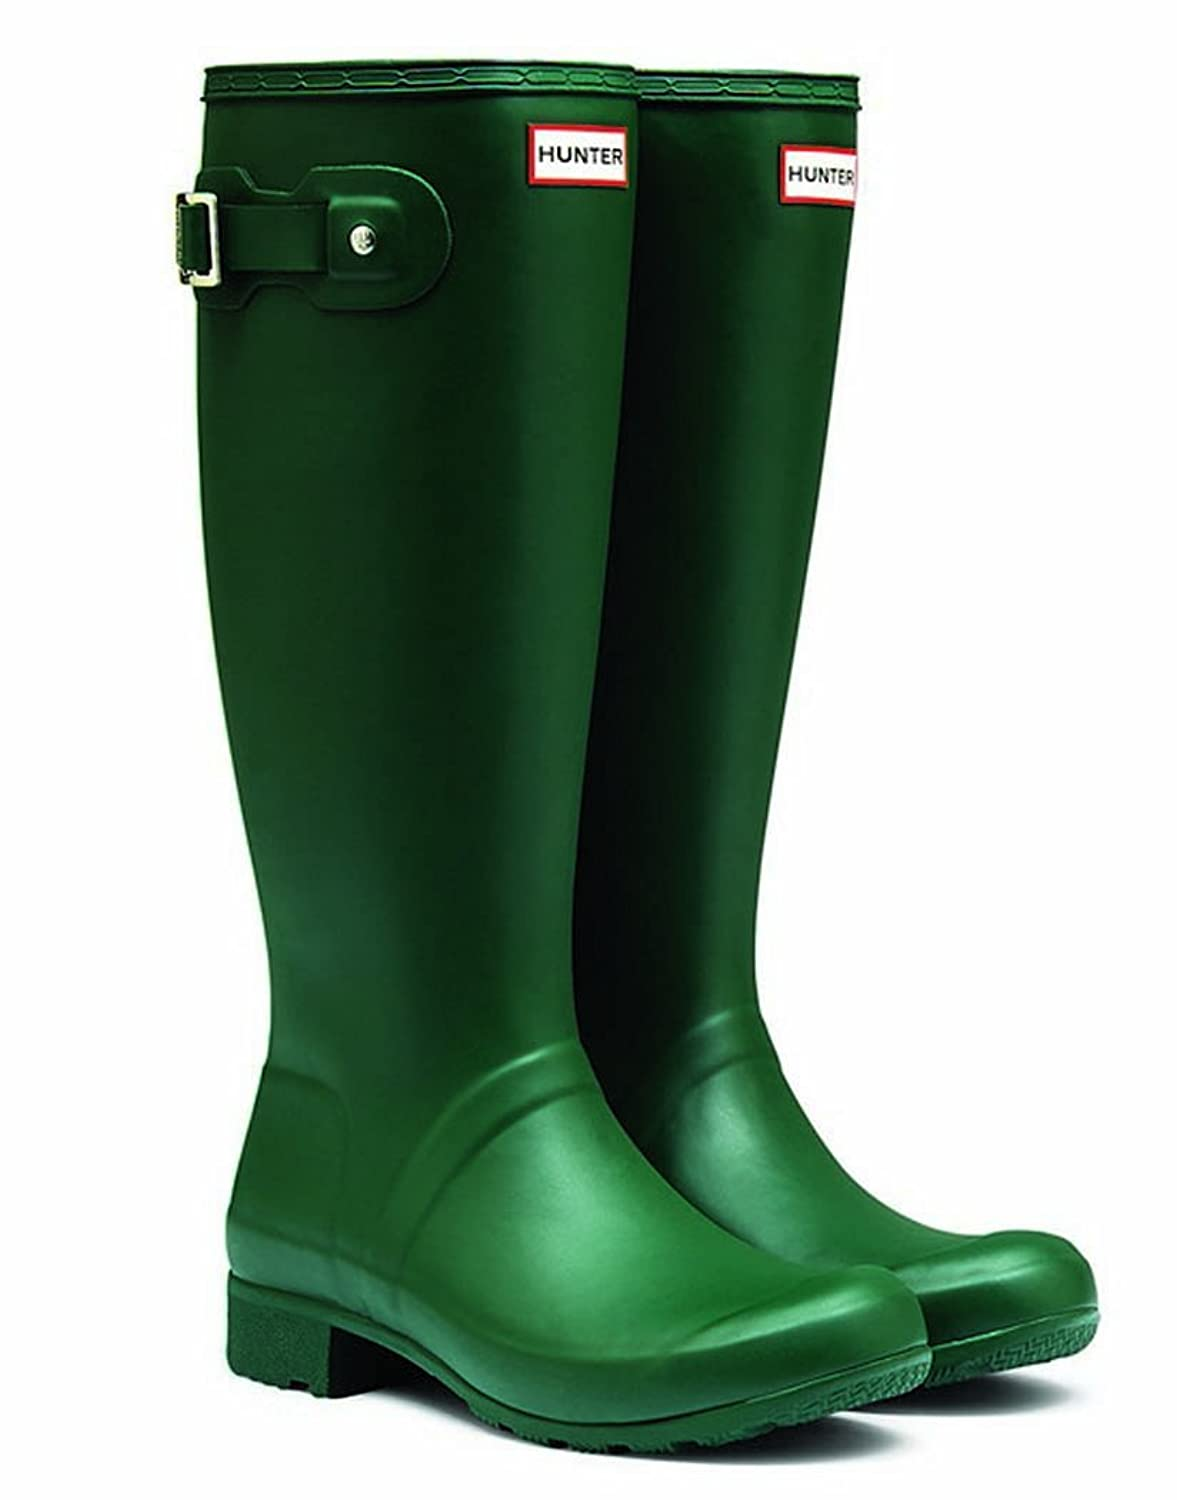 Hunter Original Tour Hunter Green Women's Rain Boots